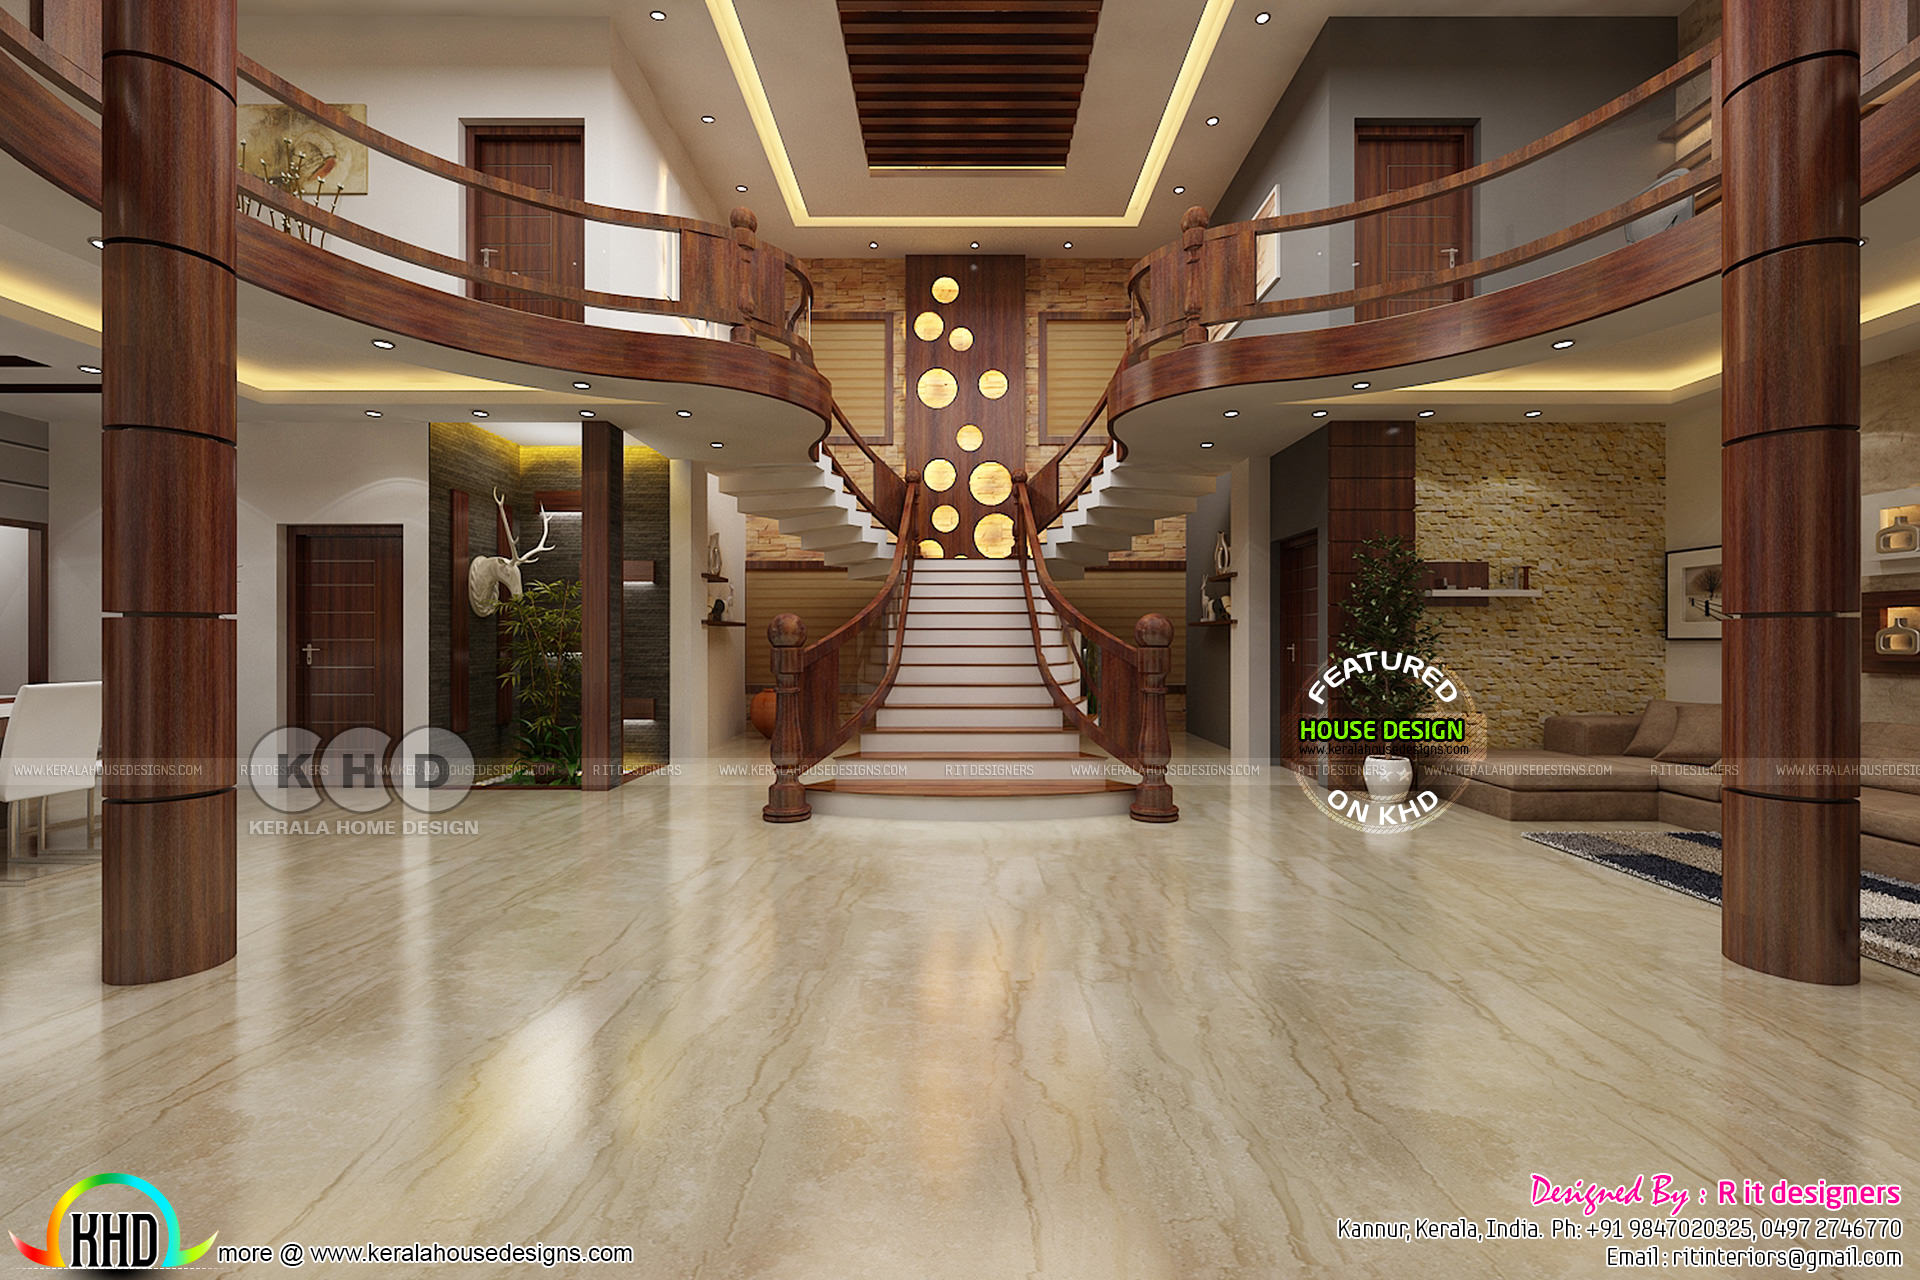 Stunning Wooden Bifurcated Stair Design Kerala Home Design